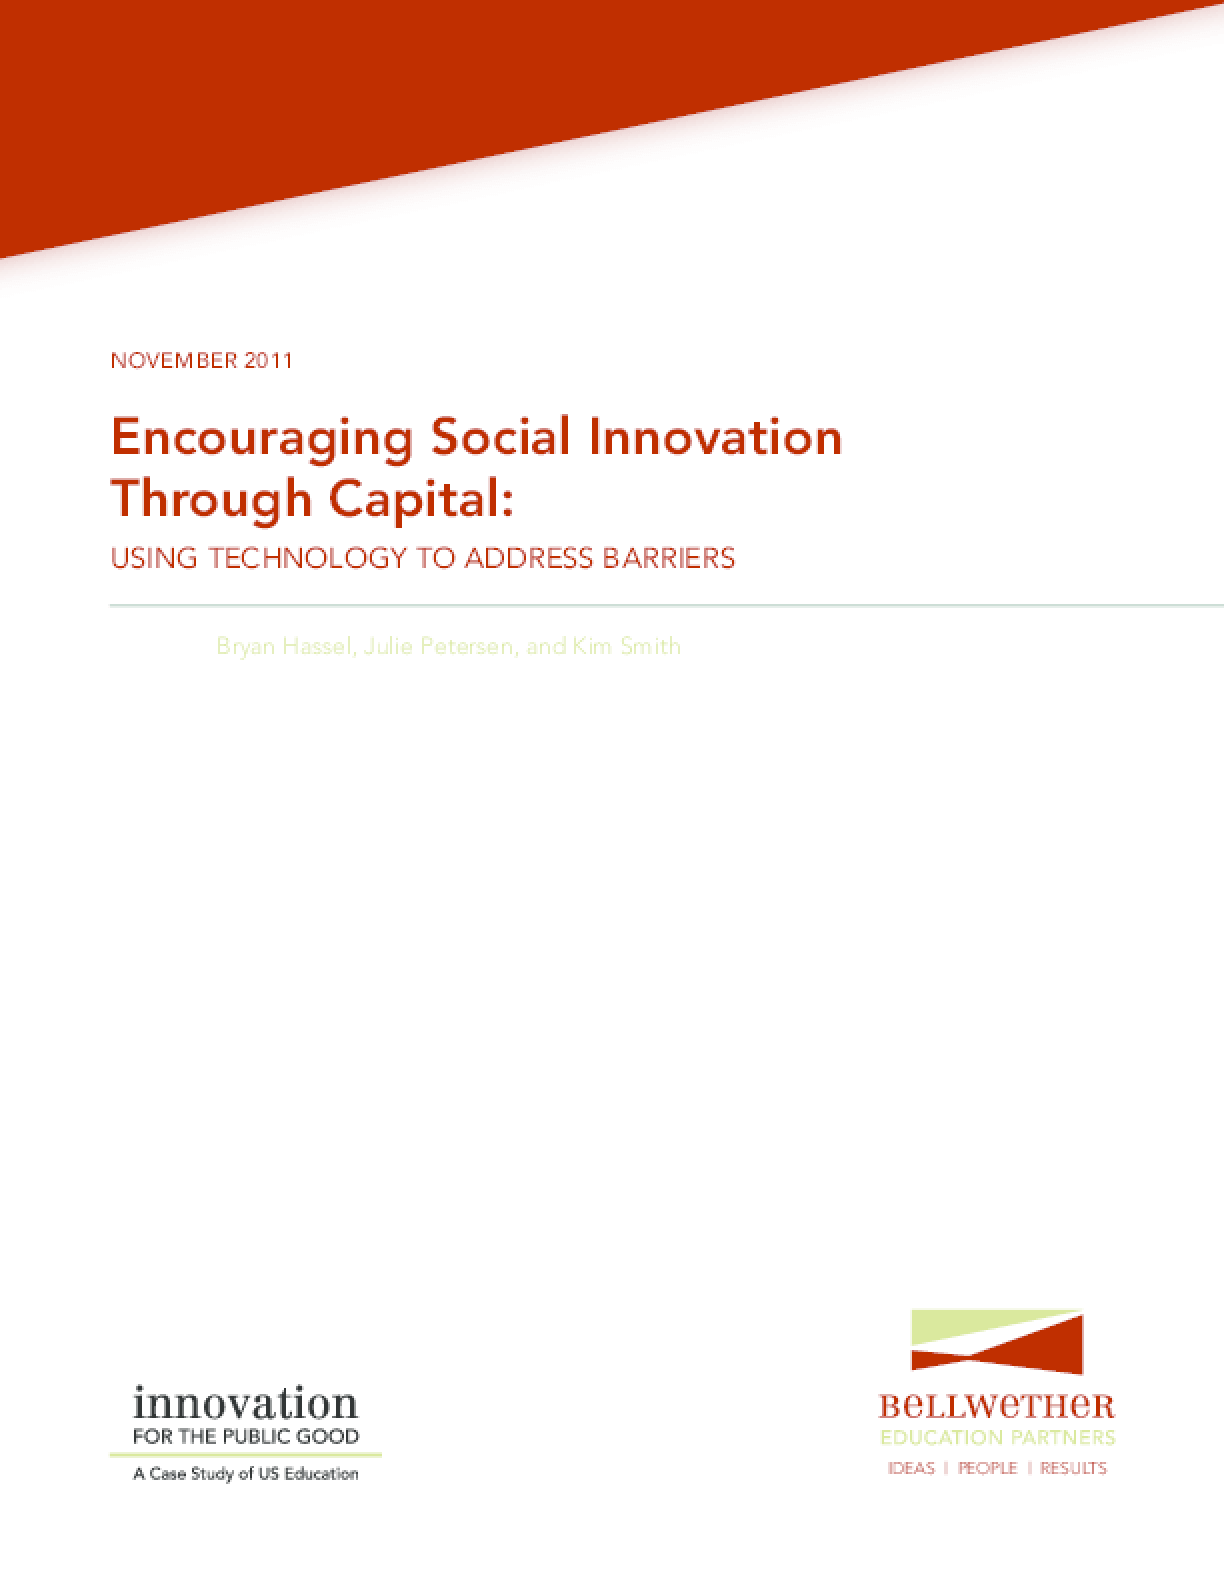 Encouraging Social Innovation Through Capital: Using Technology to Address Barriers